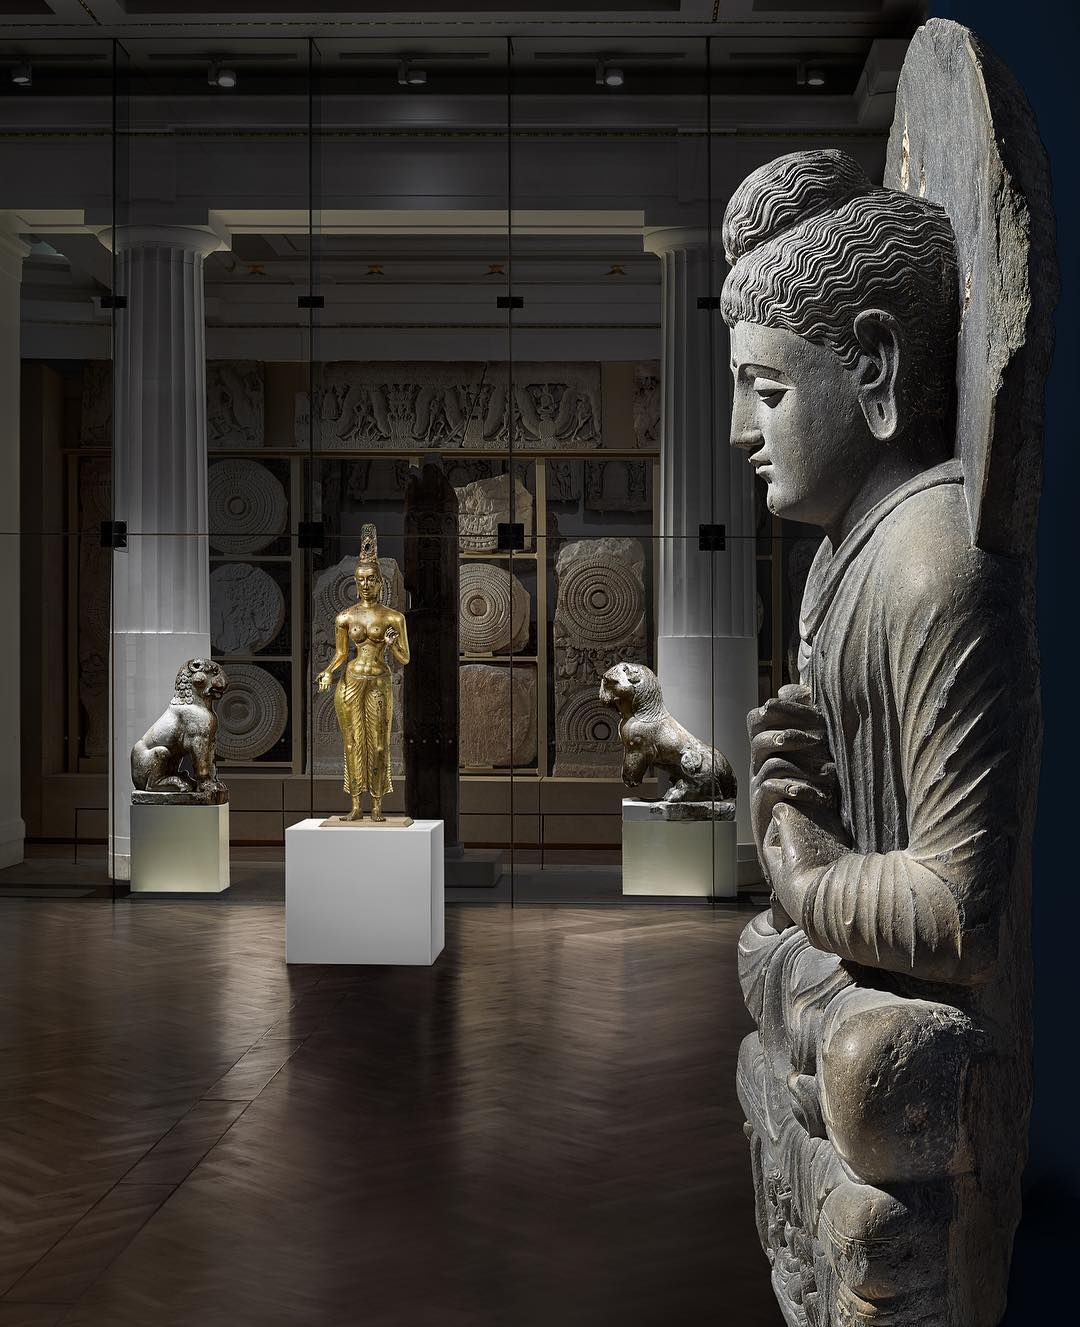 British Museum On Instagram This Statue Of The Buddha Was Made In The 2nd 3rd Century In Gandhara A Historical Region Coverin Buddha Statue Buddha Wall Art